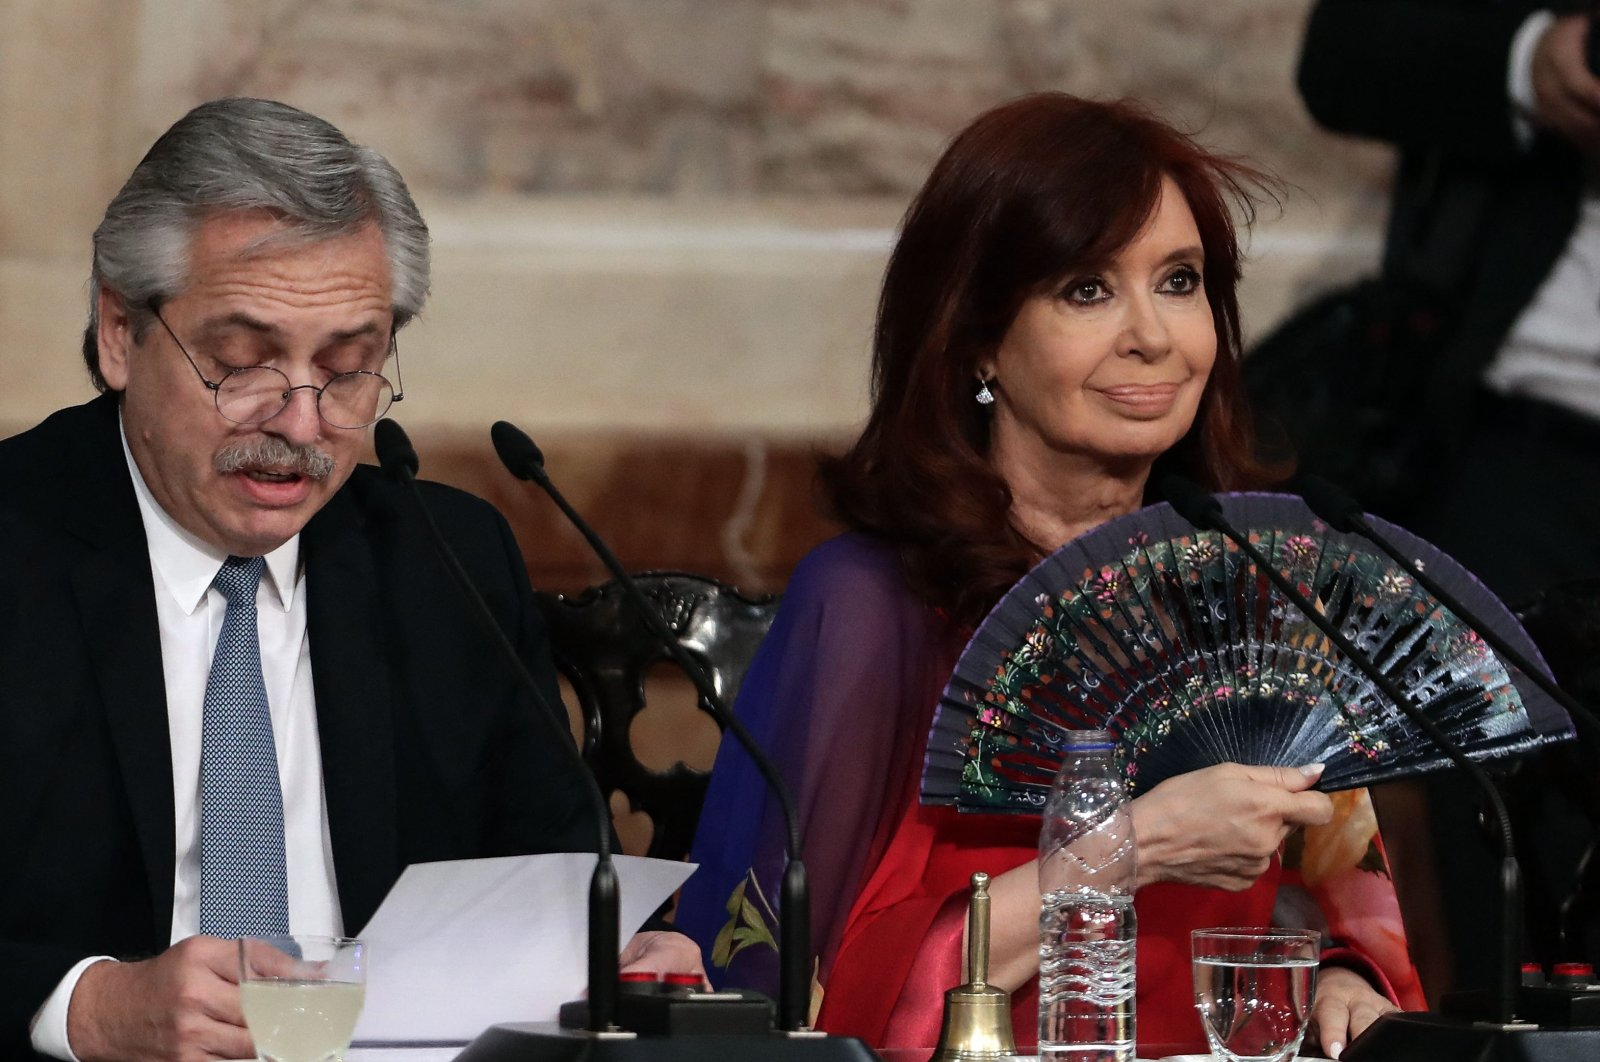 Argentine President Alberto Fernandez (L) delivers a speech, next to Vice President Cristina Fernandez de Kirchner, during the inauguration of the 138th period of ordinary sessions at the Congress in Buenos Aires, Argentina, March 1, 2020. (AFP Photo)